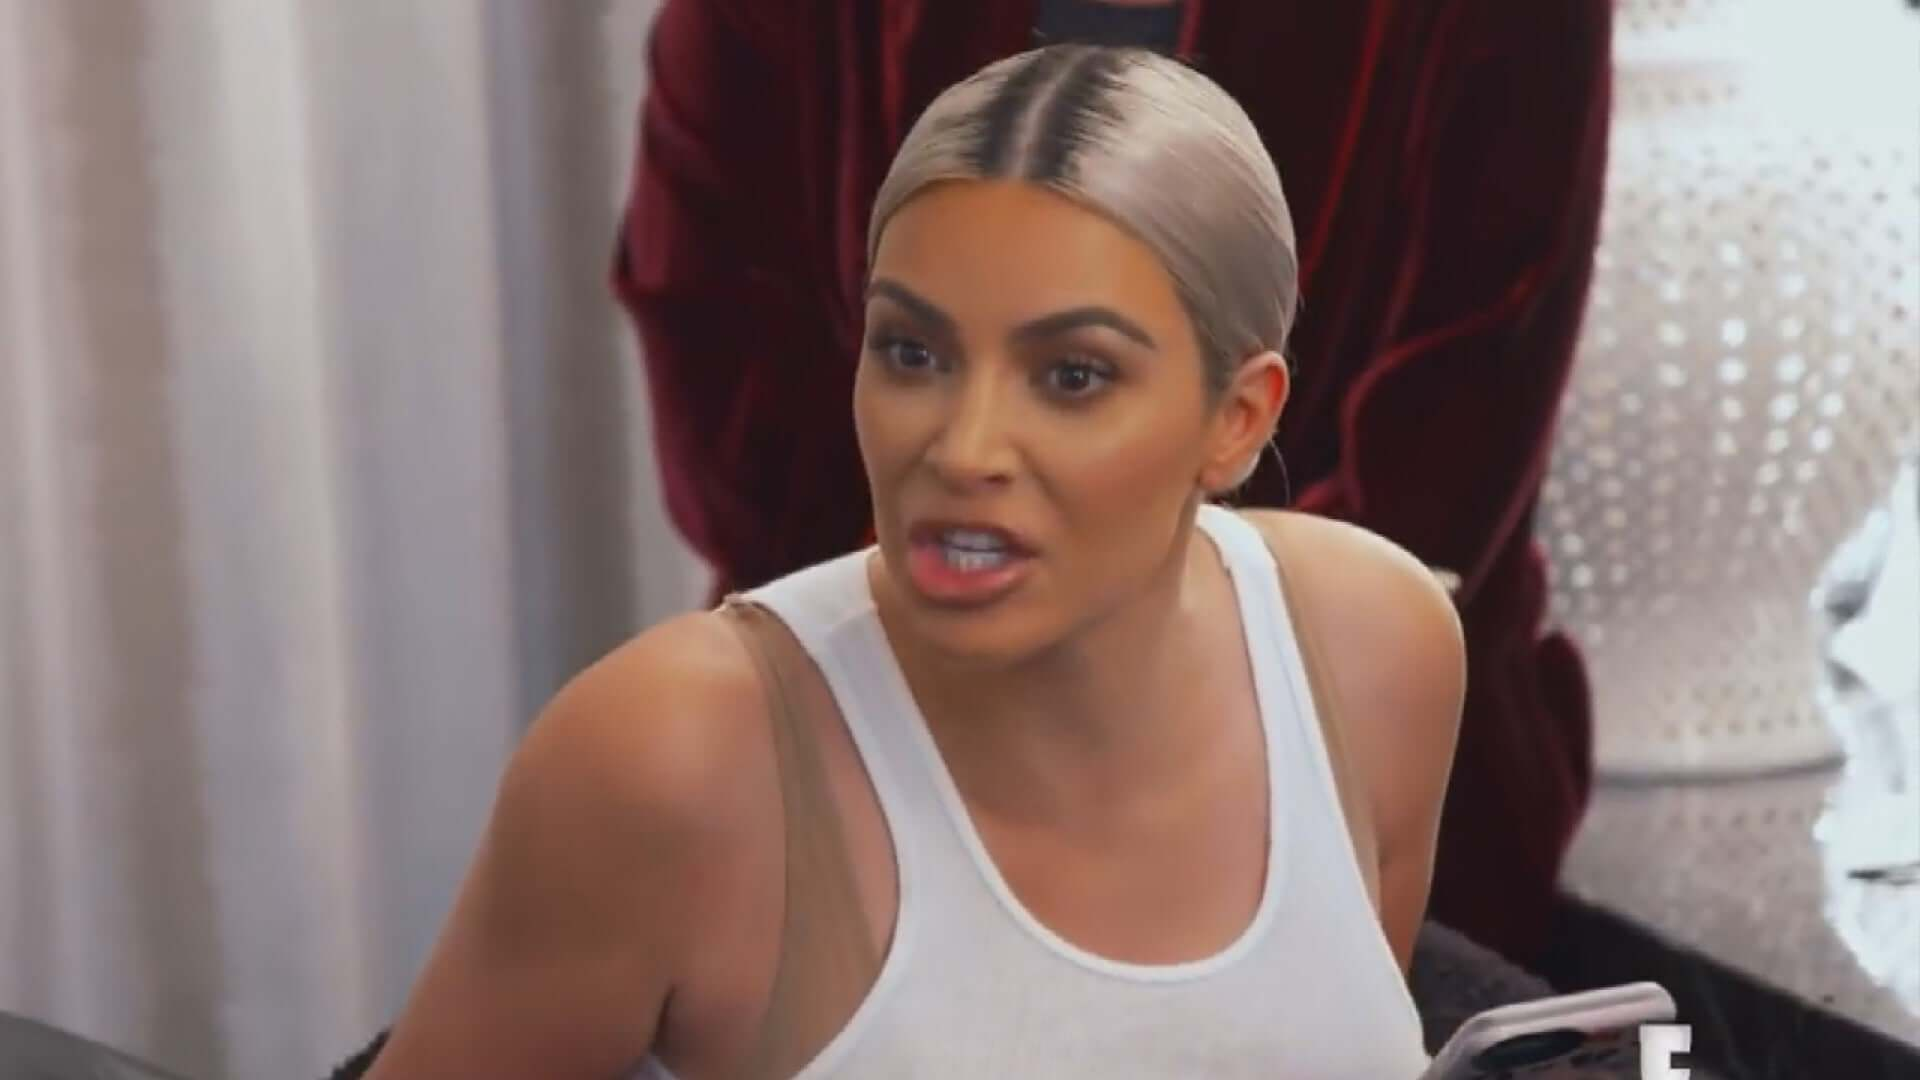 Kim Kardashian Claps Support at Criticism Over Sister Screaming Match in 'KUWTK' Teaser